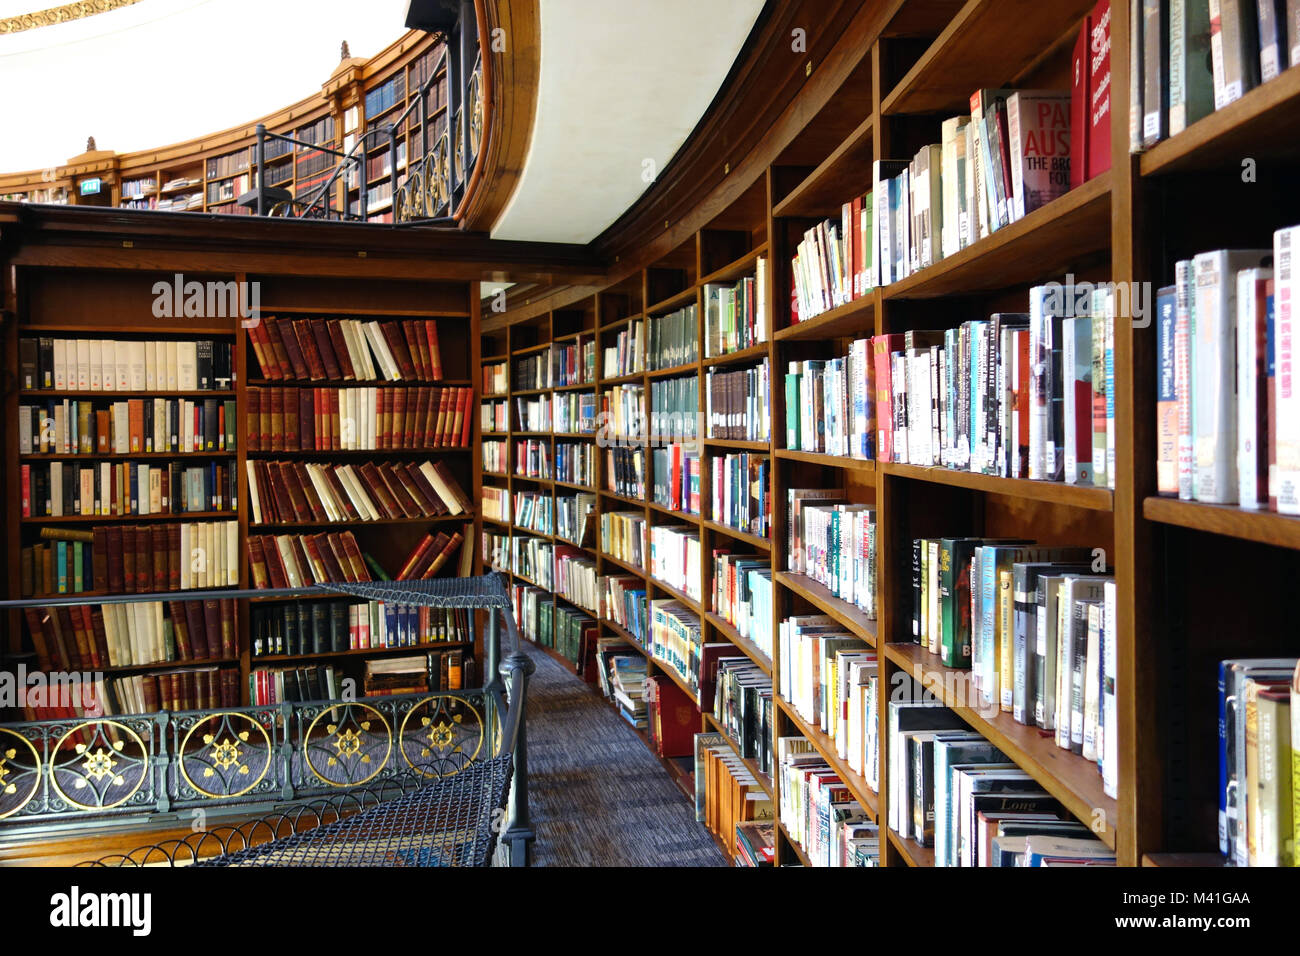 The Circular Wooden Book Shelves in the Picton Reading Room in Liverpool Central Library.  Curved, Curving Stock Photo